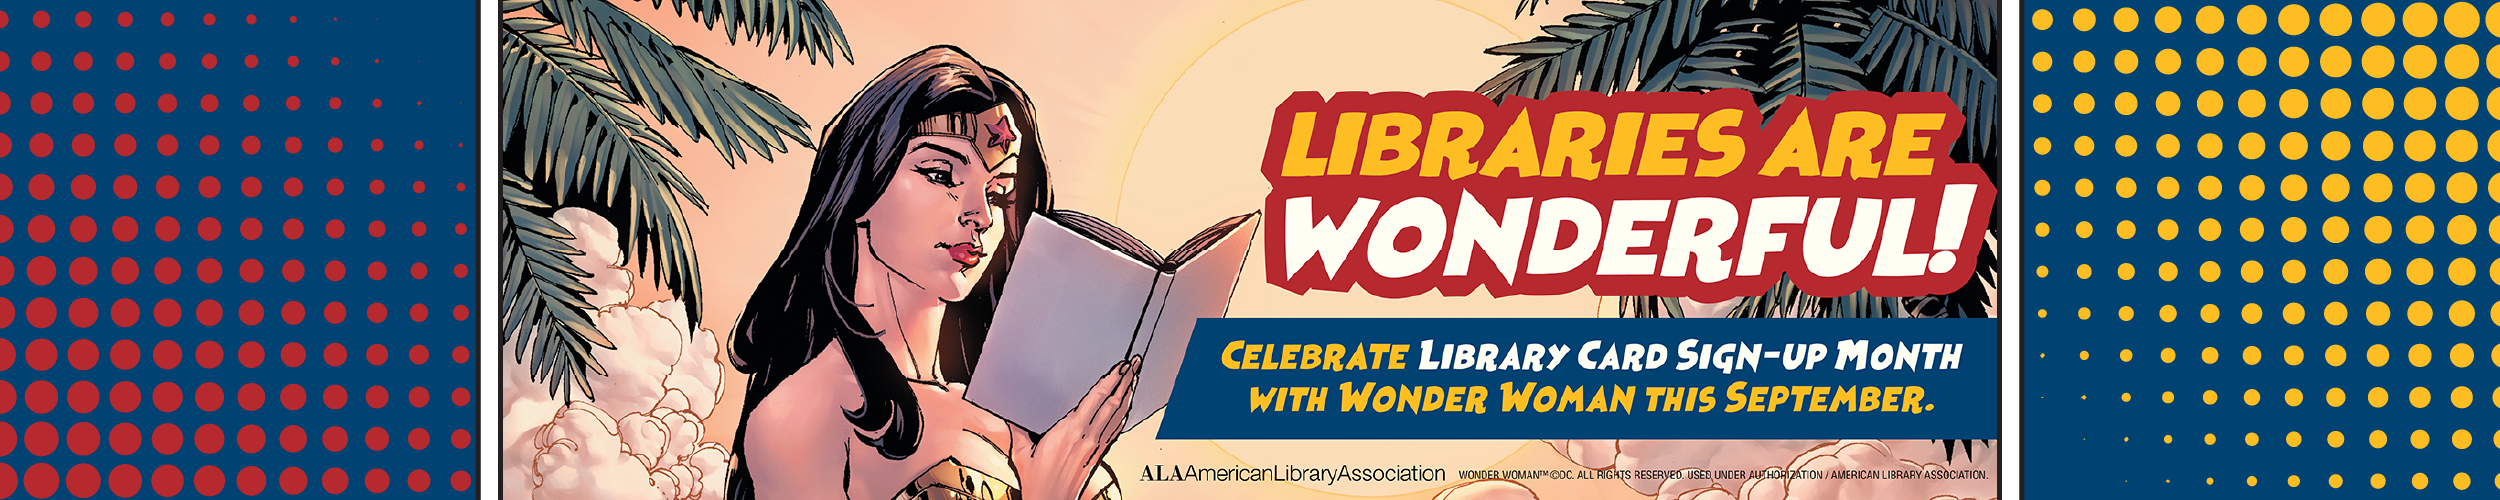 Libraries are Wonderful! Celebrate Library Card Sign-Up Month with Wonder Woman This September. Image of Wonder Woman reading a book on comic book background.